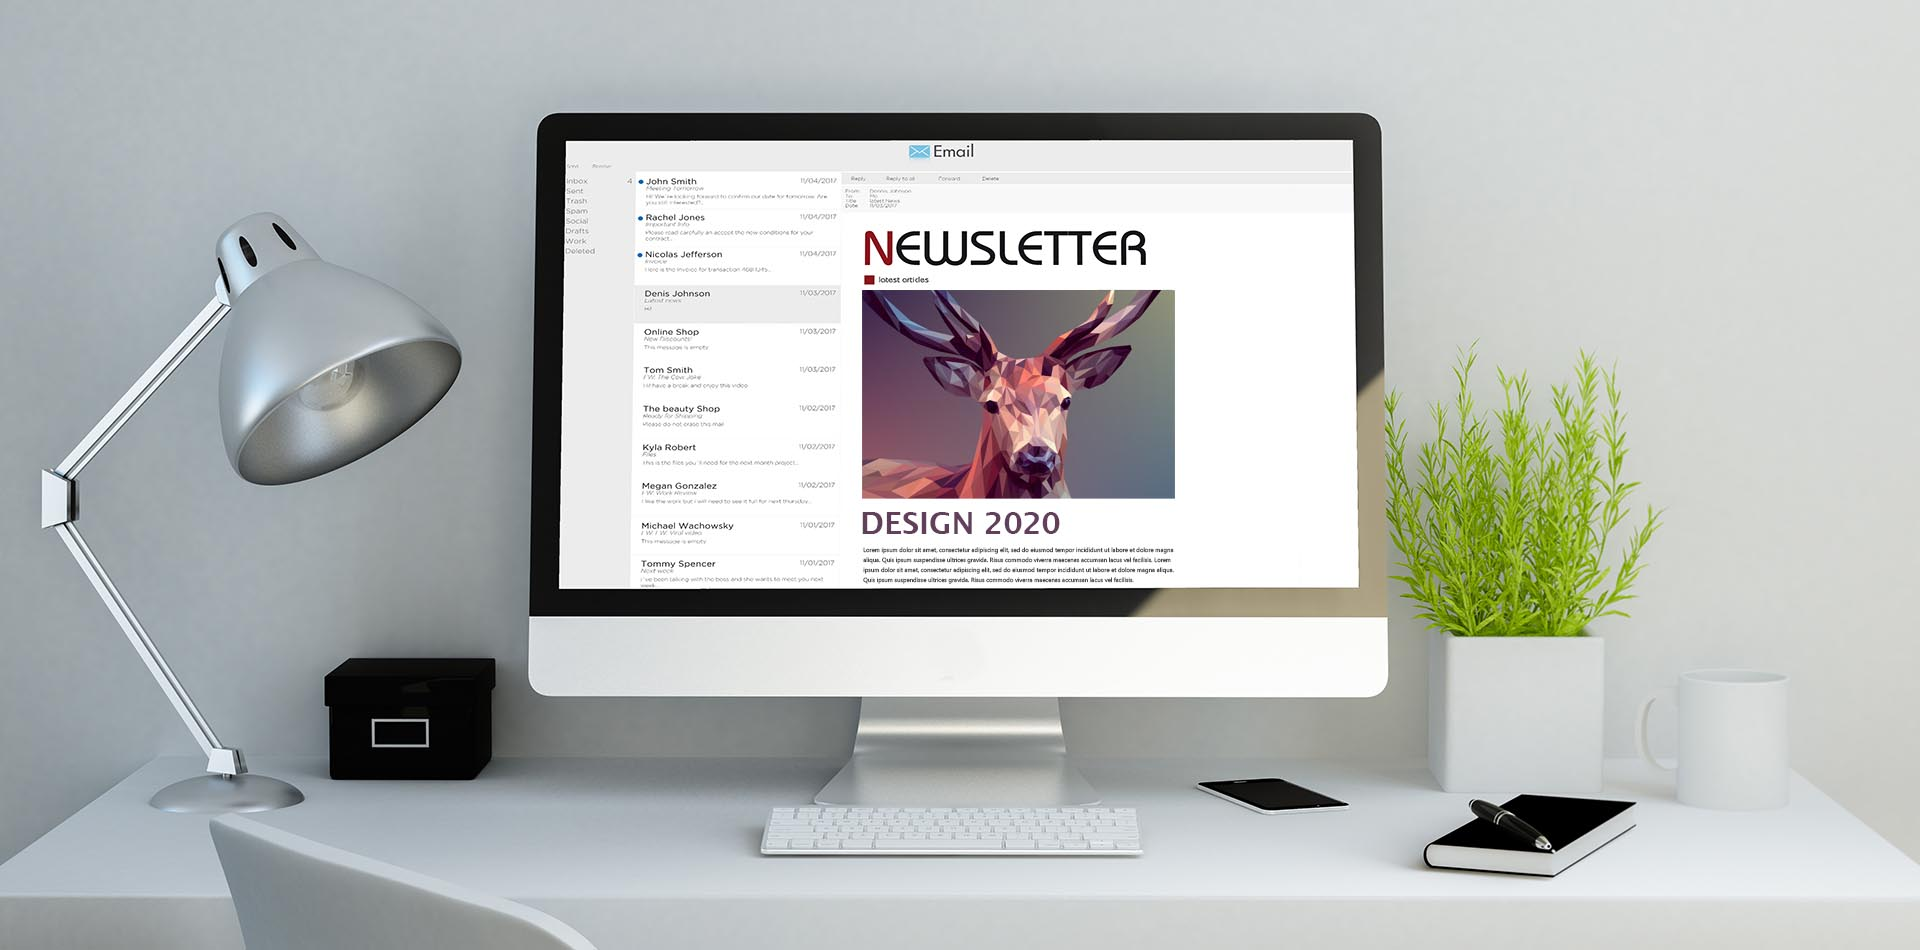 Newsletter Design 2020 - aktuelle Trends